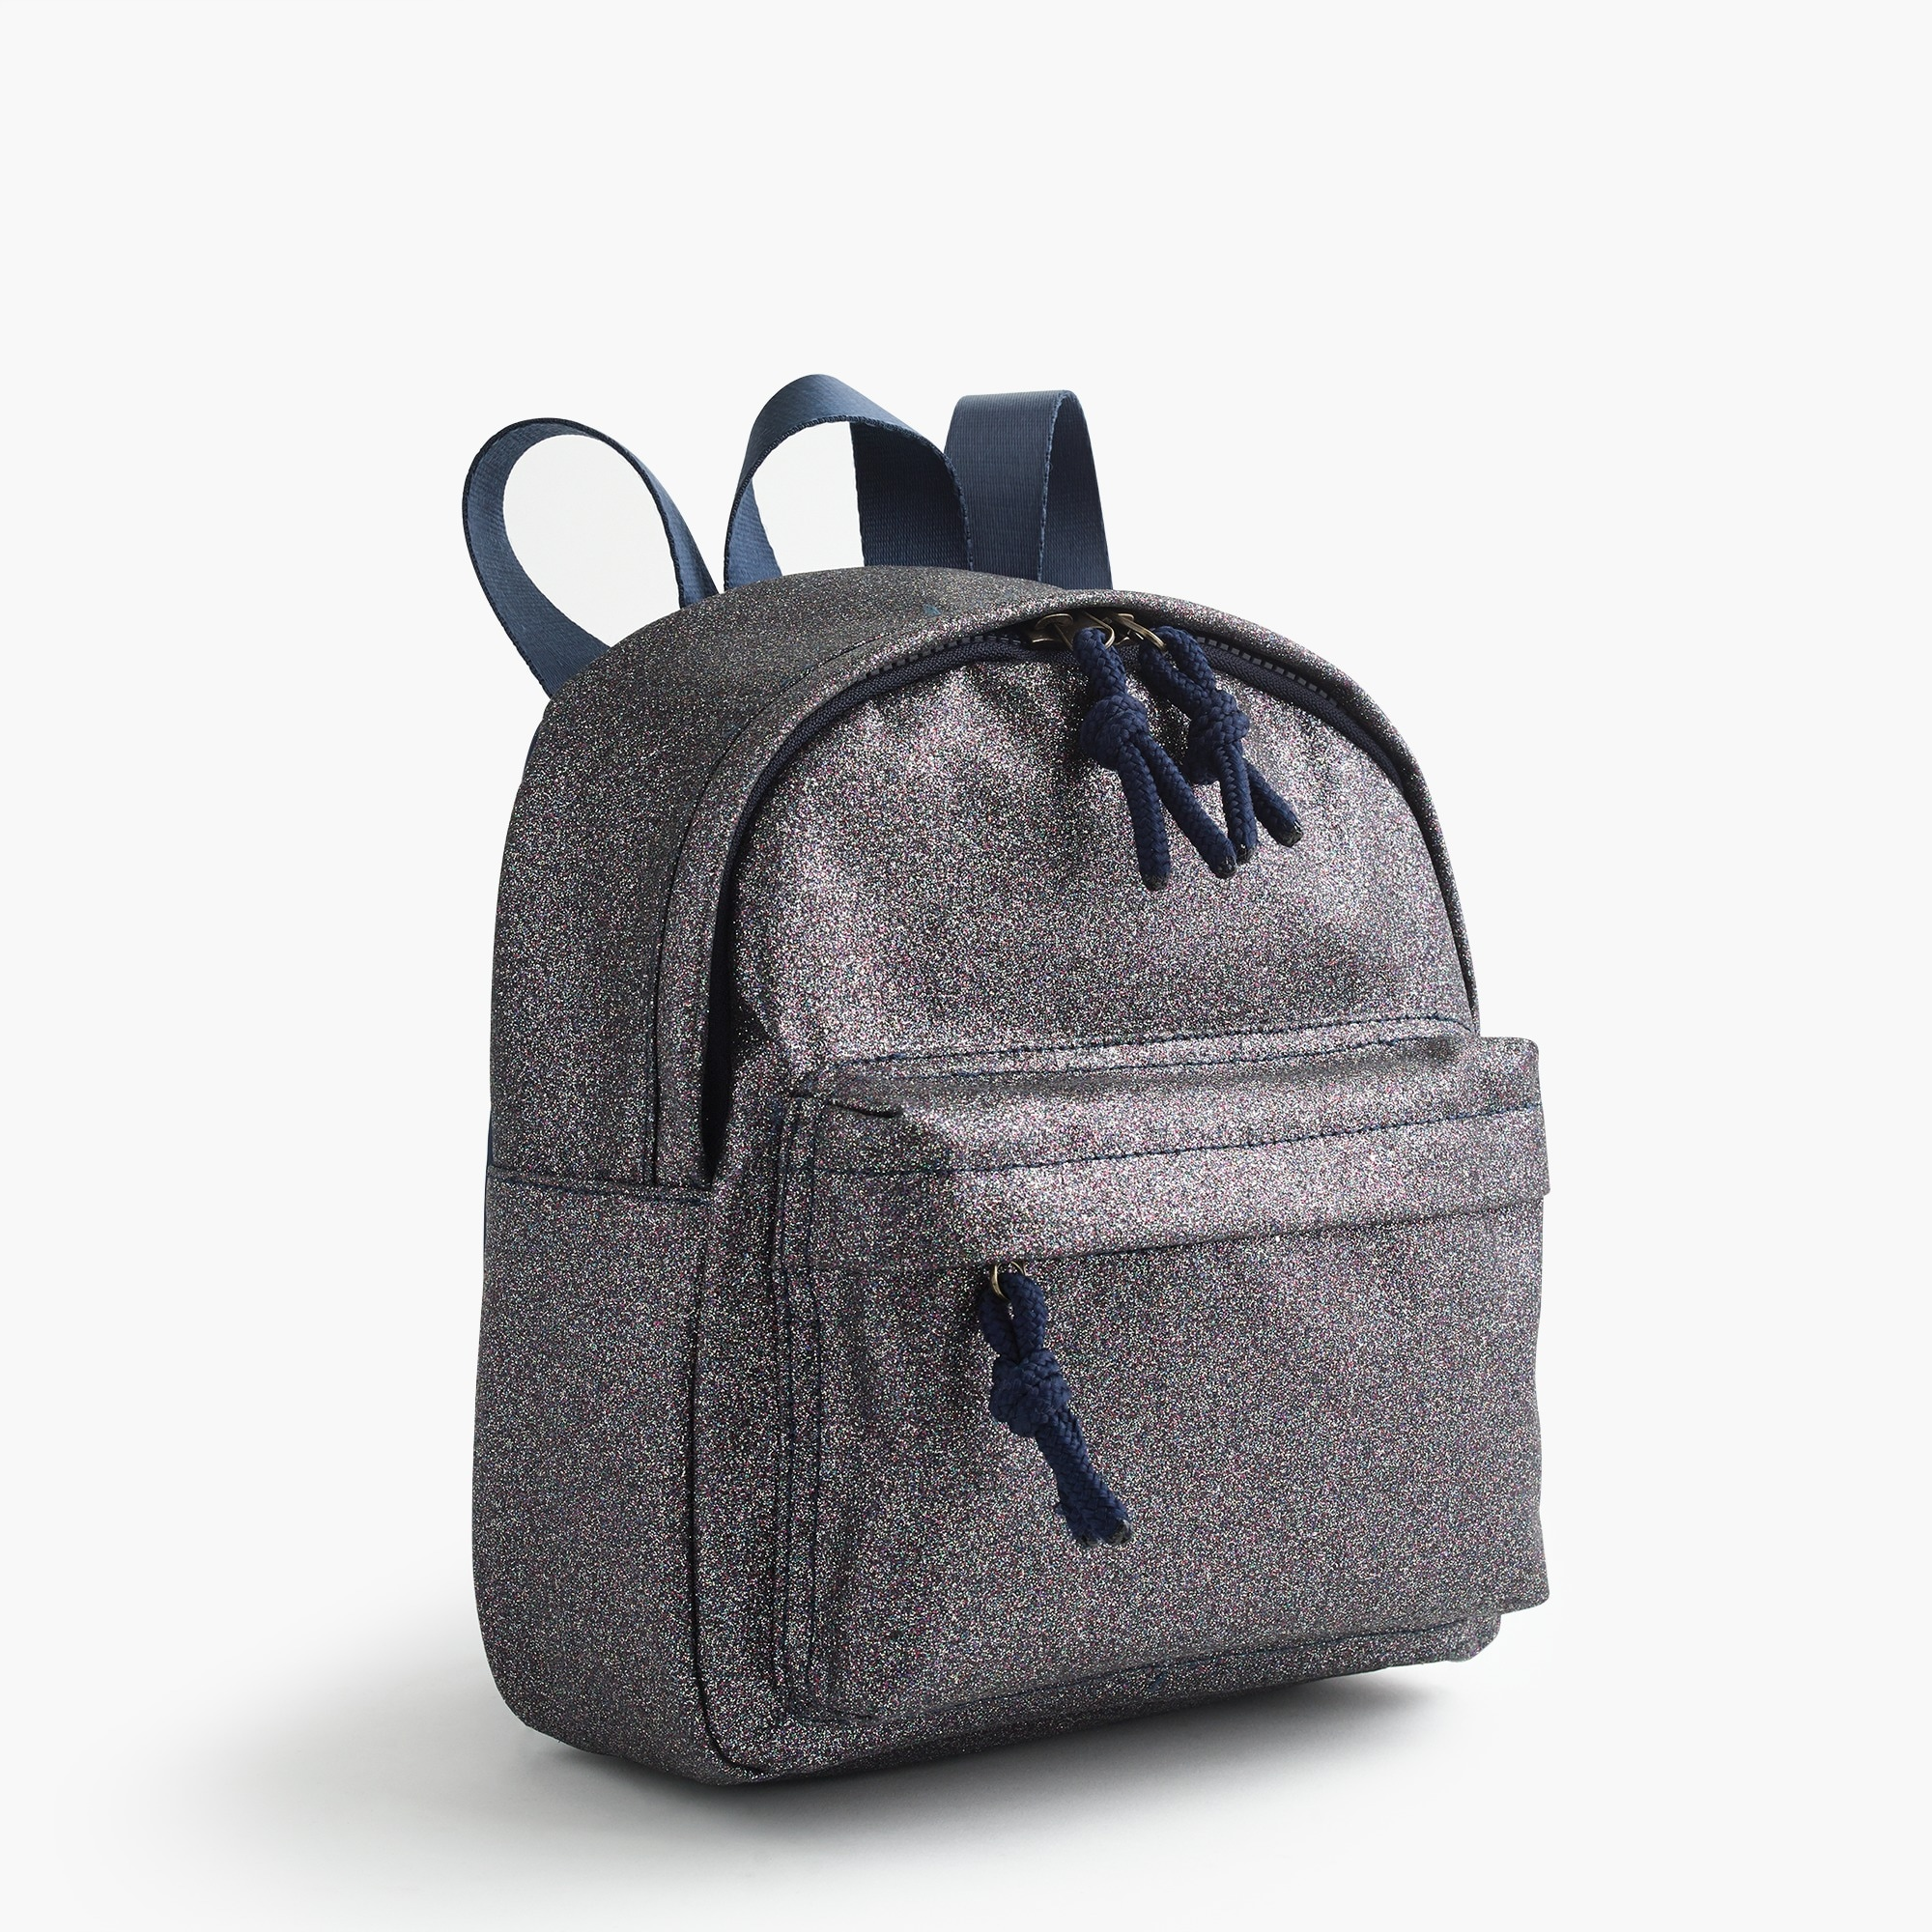 Image 1 for Kids' glitter mini backpack